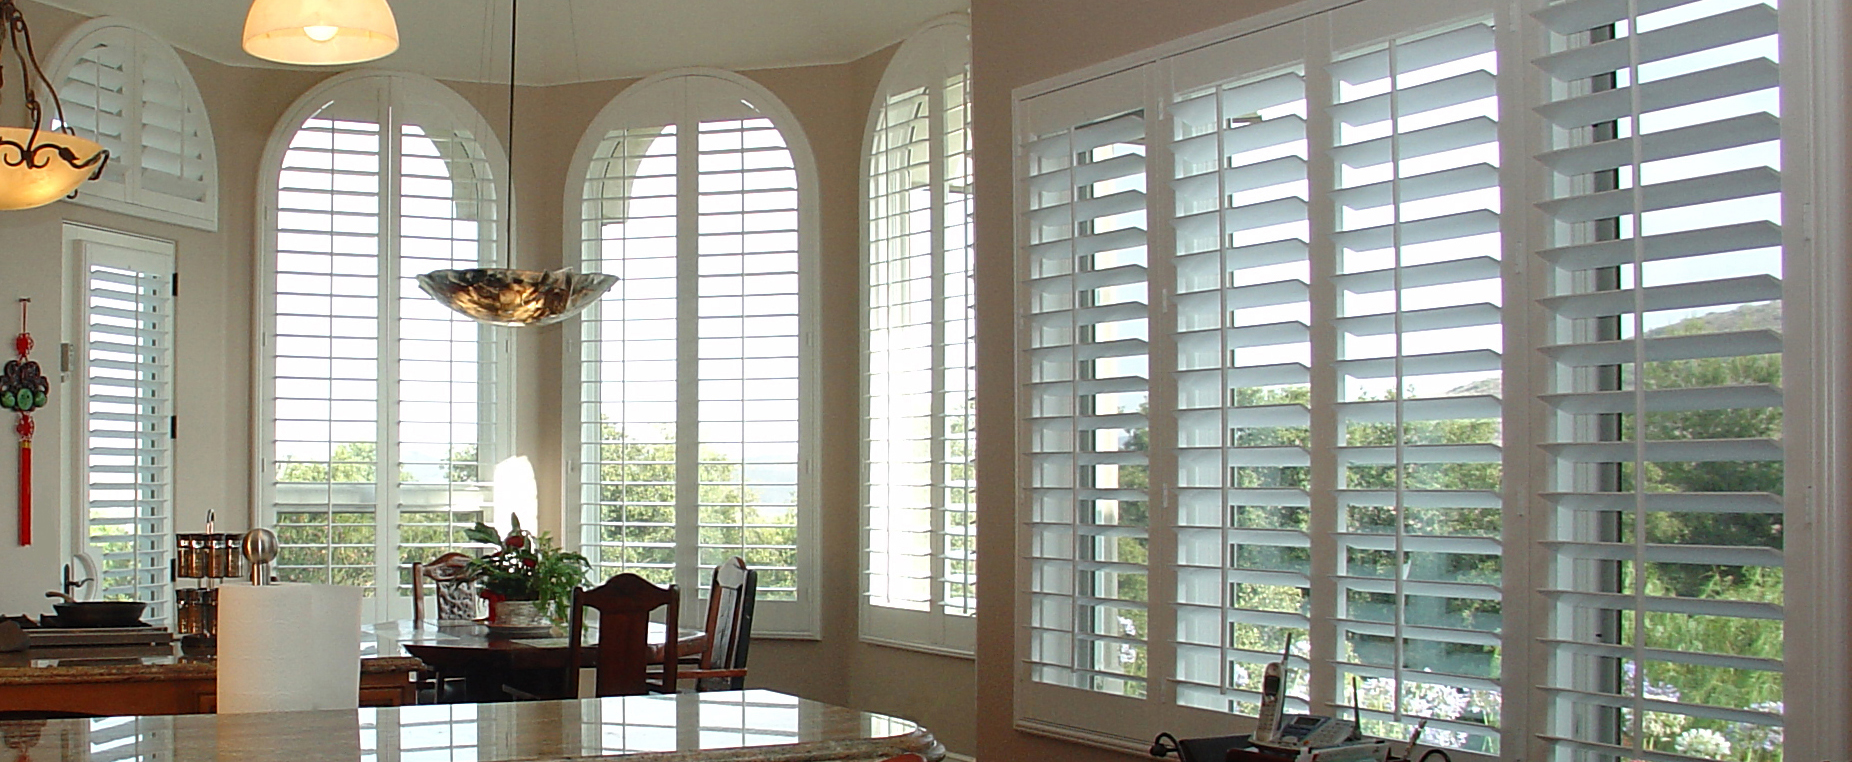 Increase Your Home's Energy Efficiency with Custom Plantation Shutters